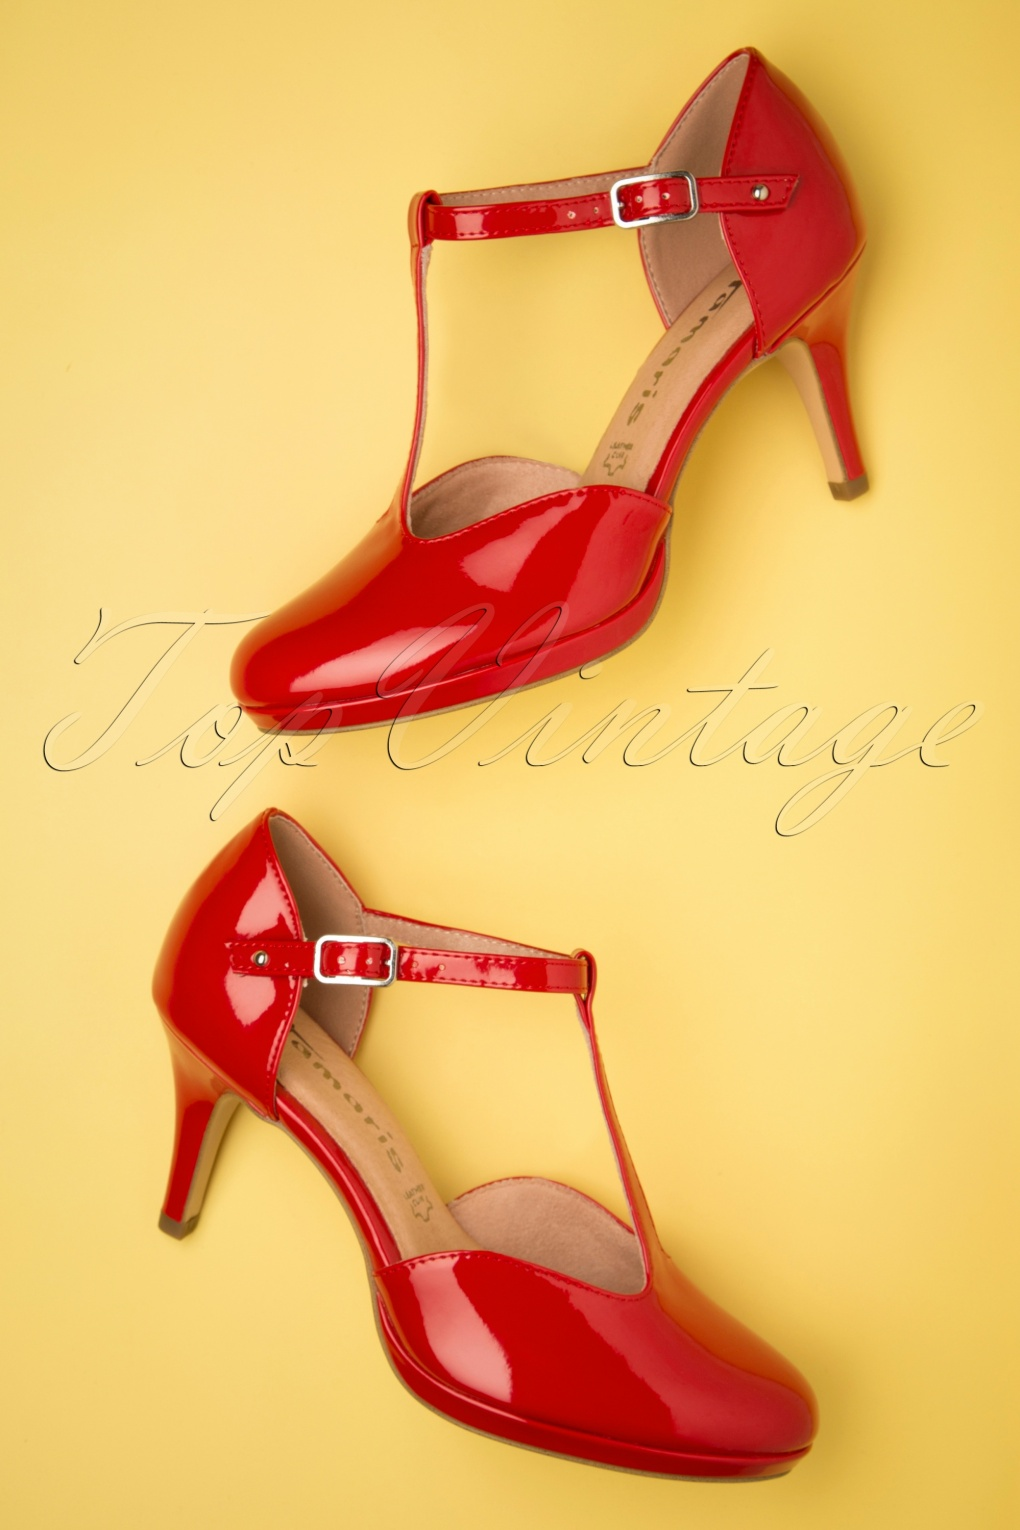 1950s Shoe Styles: Heels, Flats, Sandals, Saddles Shoes 50s Jenny Lacquer T-Strap Pumps in Chili �51.19 AT vintagedancer.com